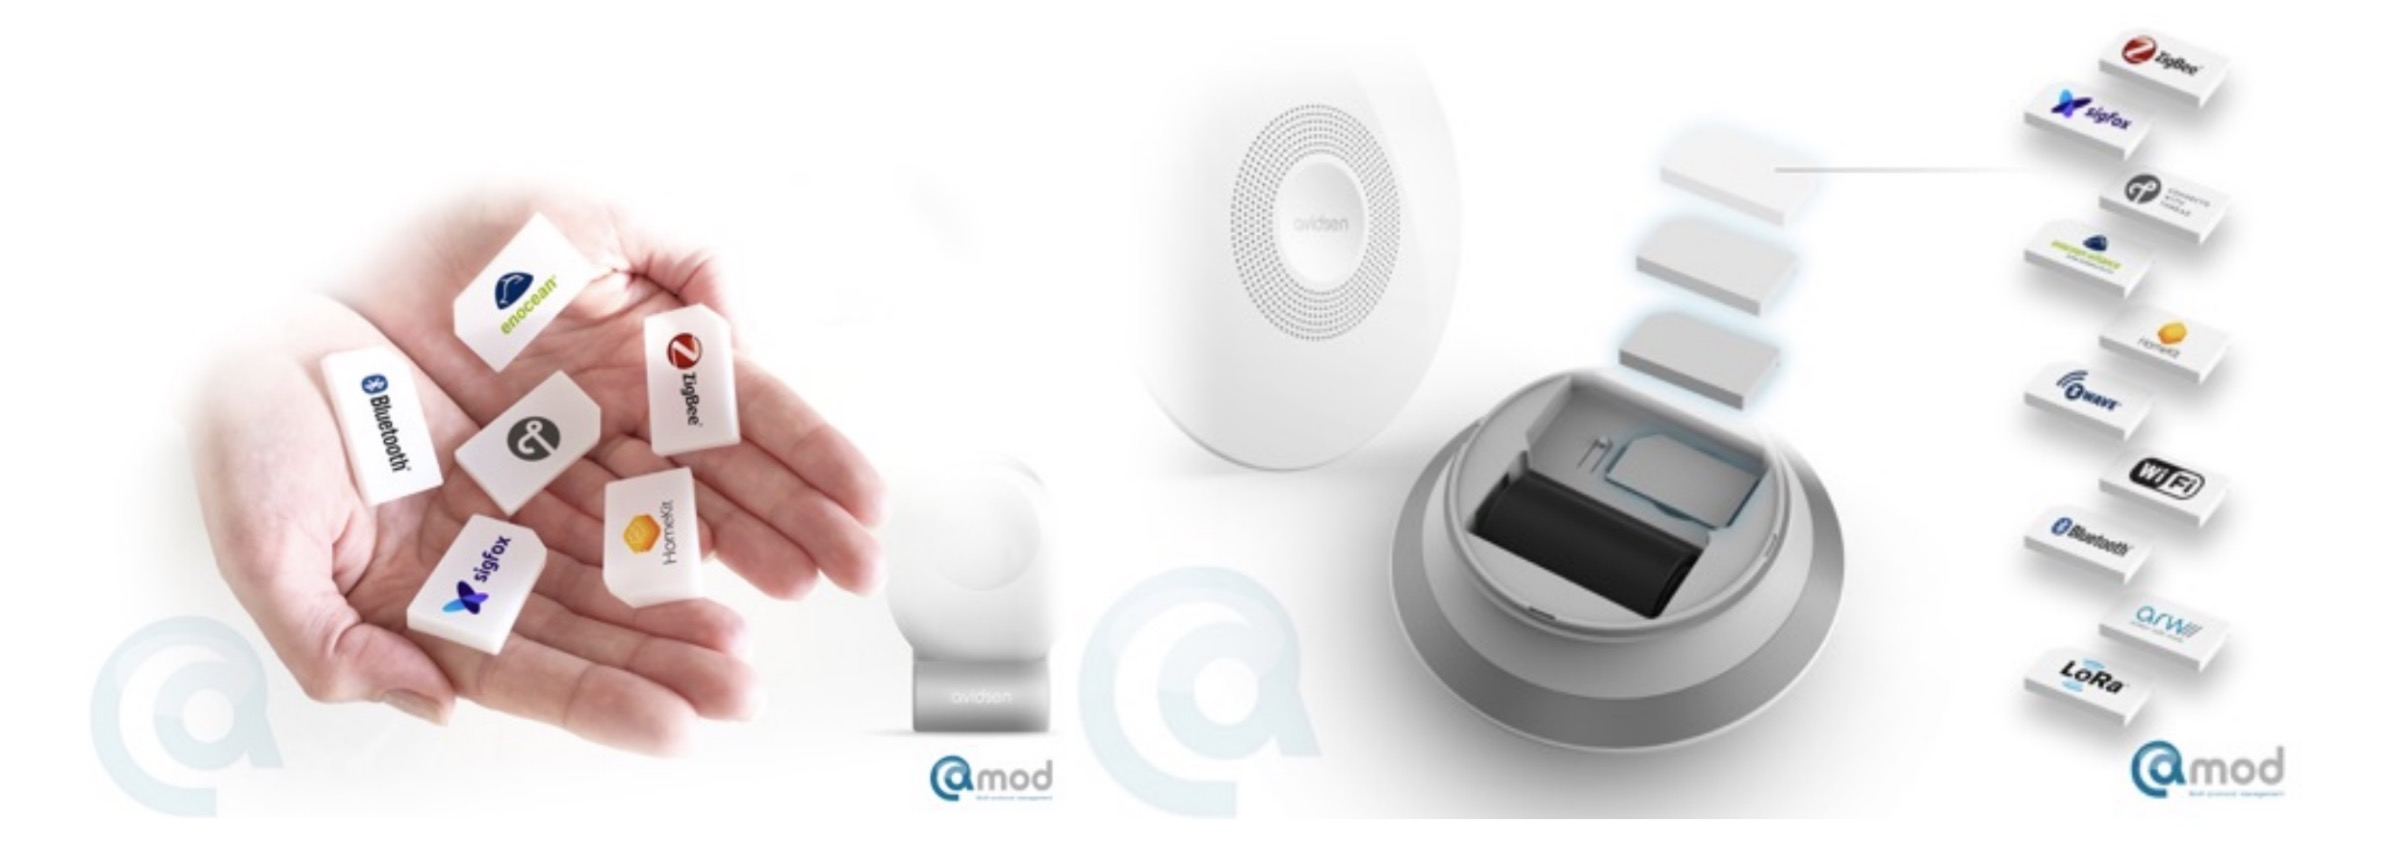 avidsen-@mod-multi-protocoles-domotique-smart-home-iot